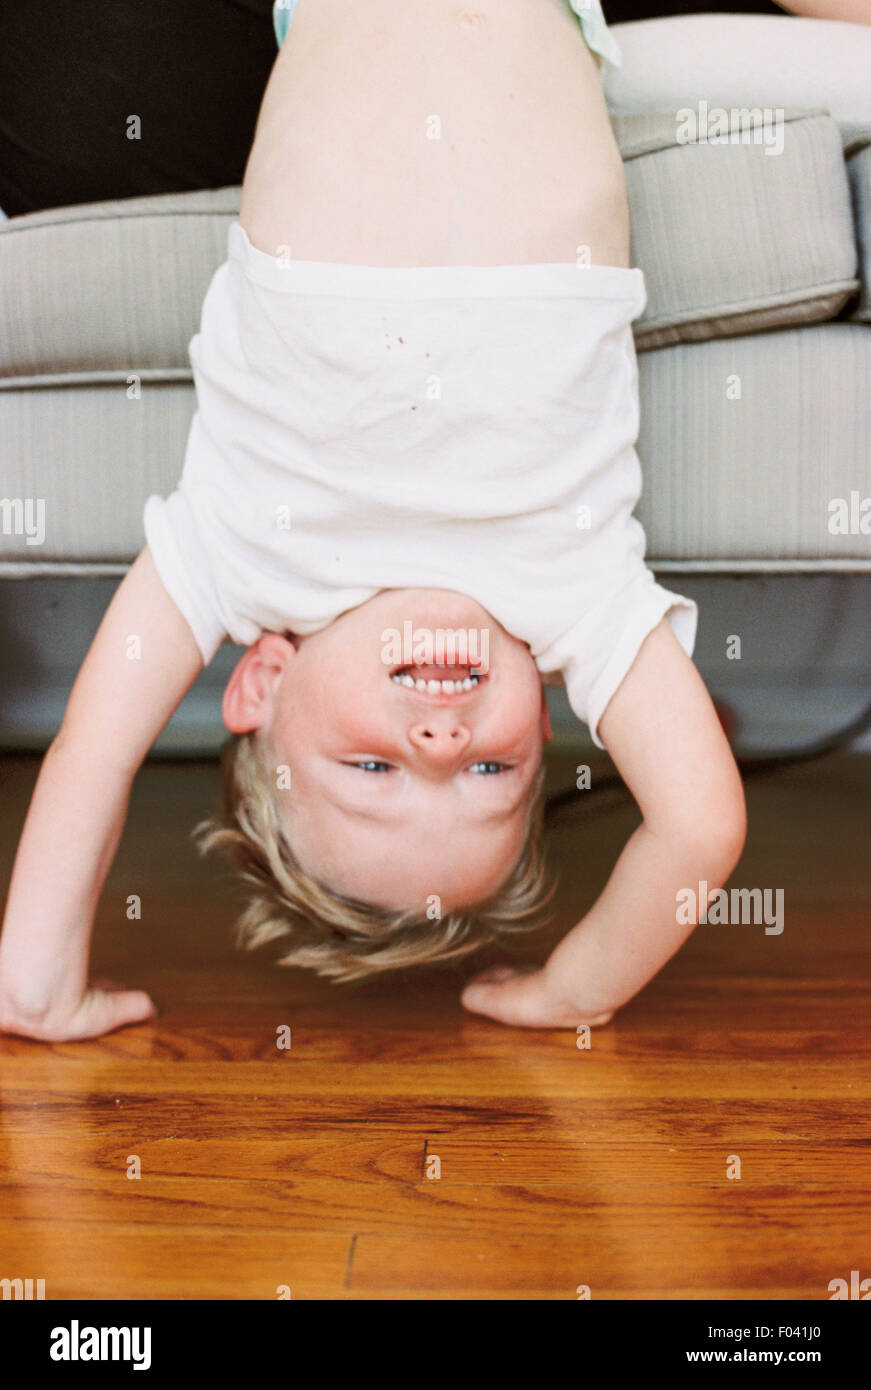 Young boy doing a handstand in front of a sofa. - Stock Image